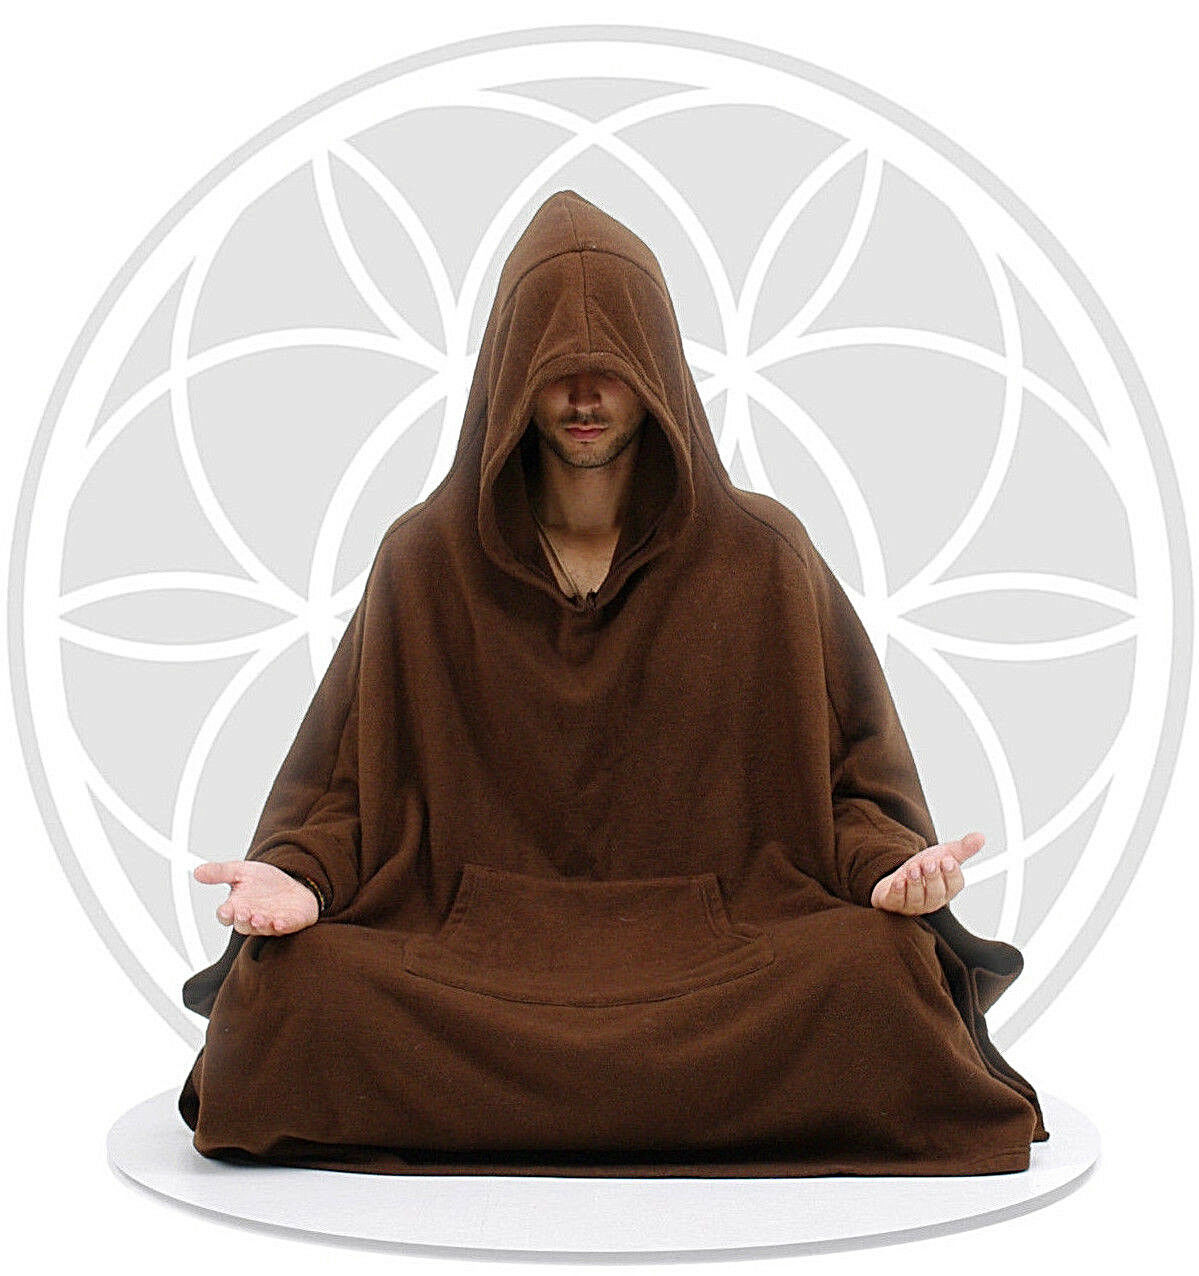 Meditation Cloak - Brown Unisex Women's Men's Yoga Relaxation Hooded Coat